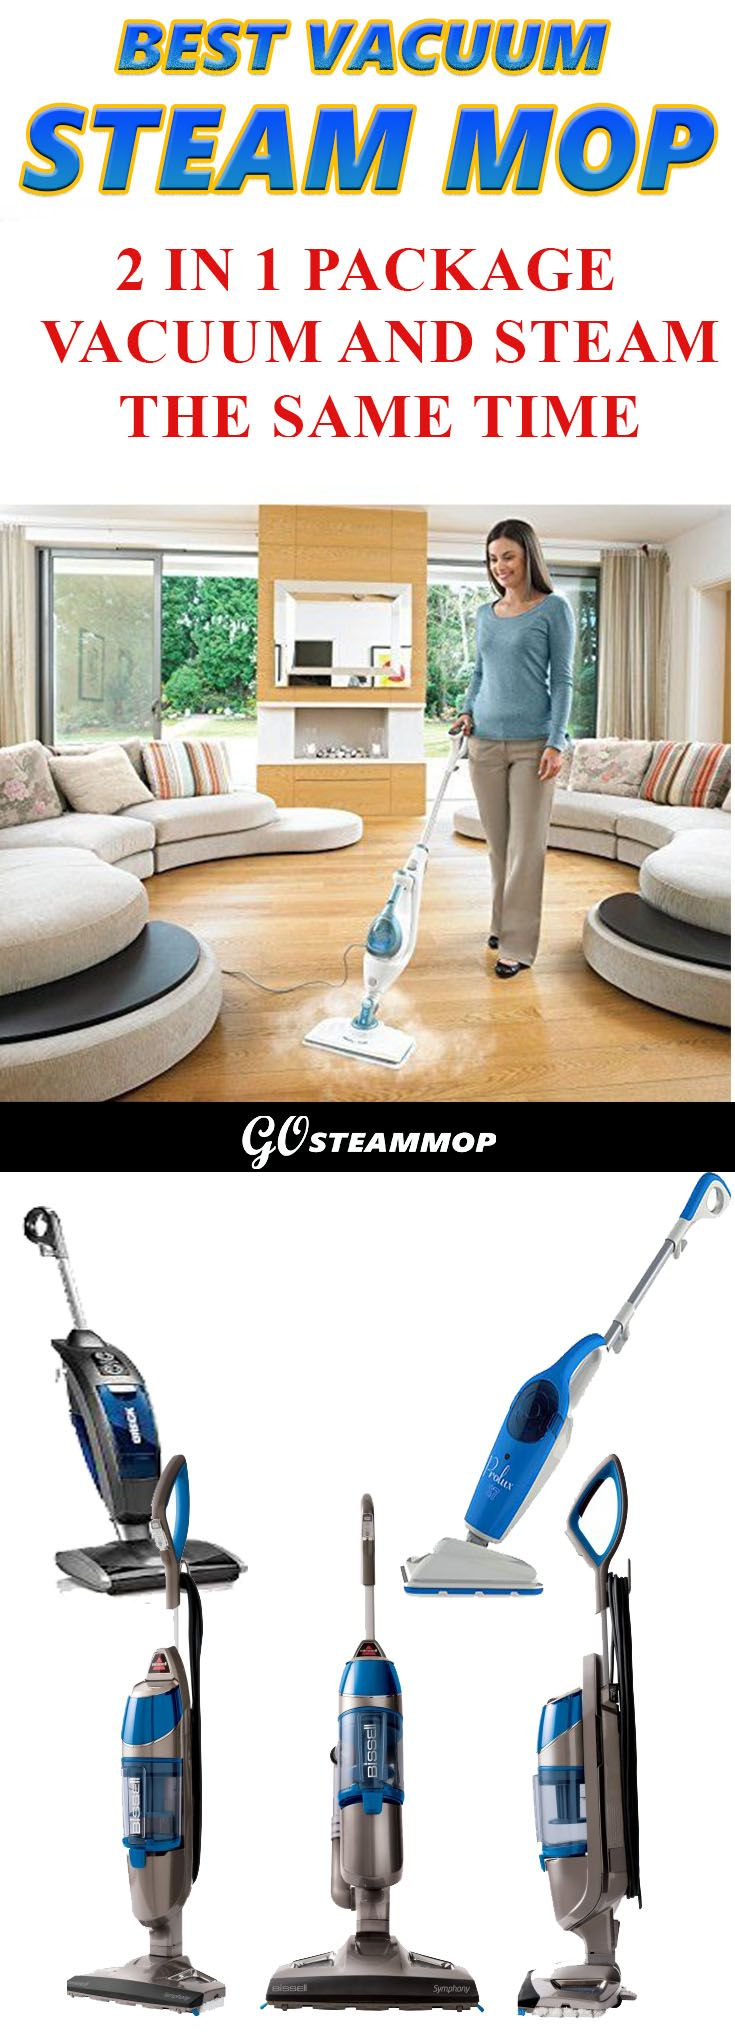 Best steam mop vacuum 2 in 1 package tool steam and vacuum at the same time revolutionize your cleaning